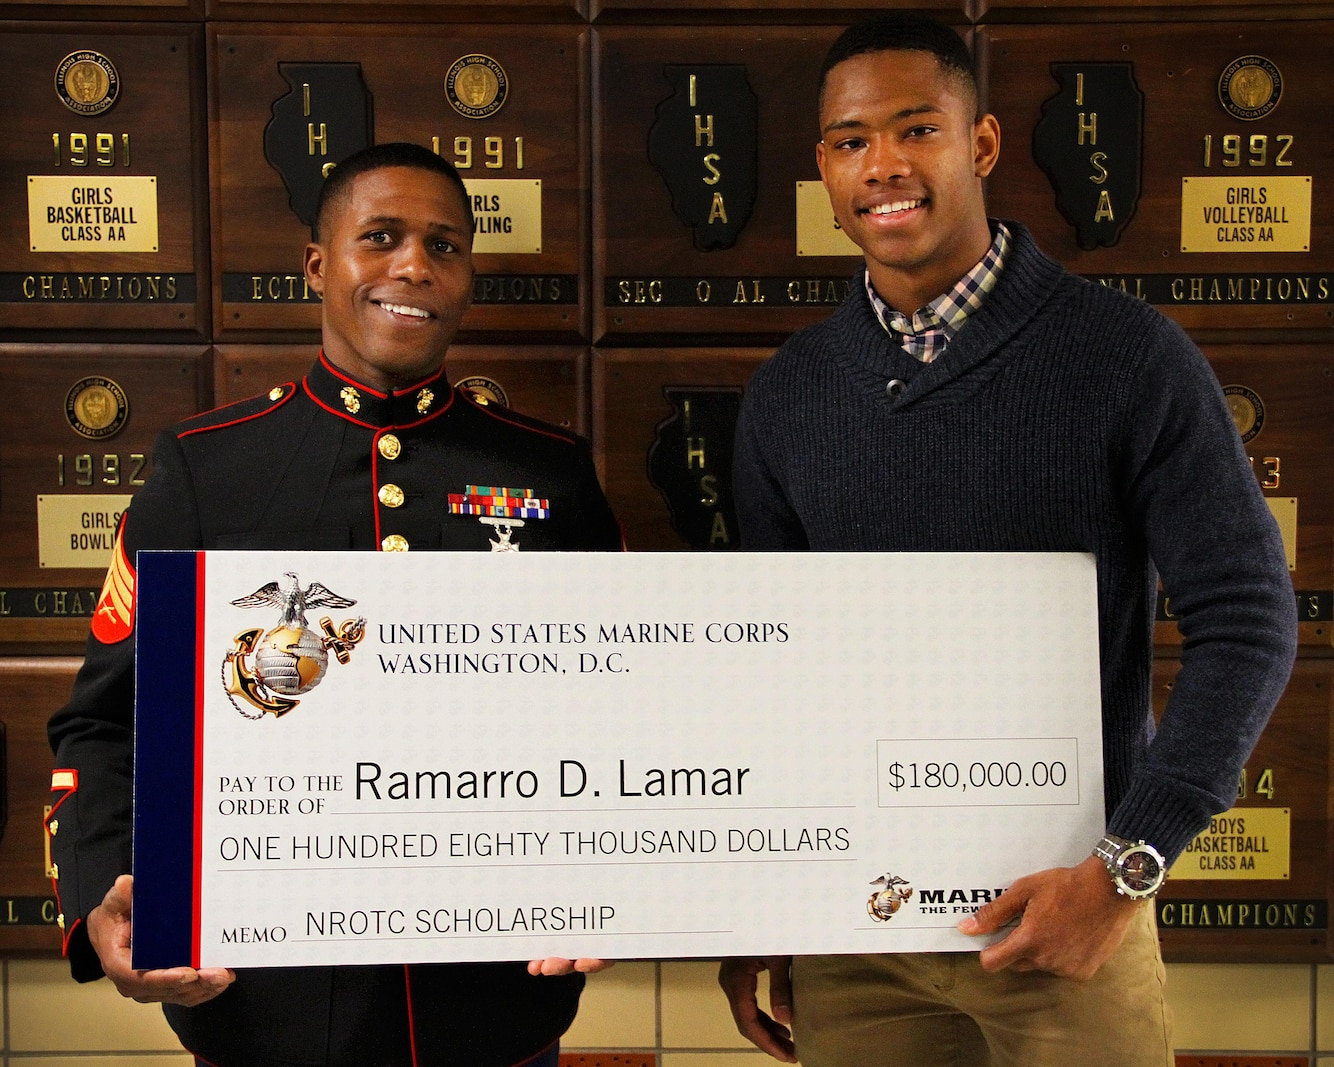 """Ramarro D. Lamar, a student of Downers Grove South High School, earned the $180,000 NROTC Scholarship Award, May 3.  Lamar's teachers, peers, along with members of the community spoke highly of his remarkable character, incredible determination, and his genuine kindness. A few of his teachers even said """"we wouldn't be surprised if we are voting him for president one day.""""  """"Lamar embodies the core values we desire of our next generation of Marine Officers,"""" said Sgt. Ramon Harris, Lamar's recruiter. """"He definitely has what it takes."""""""